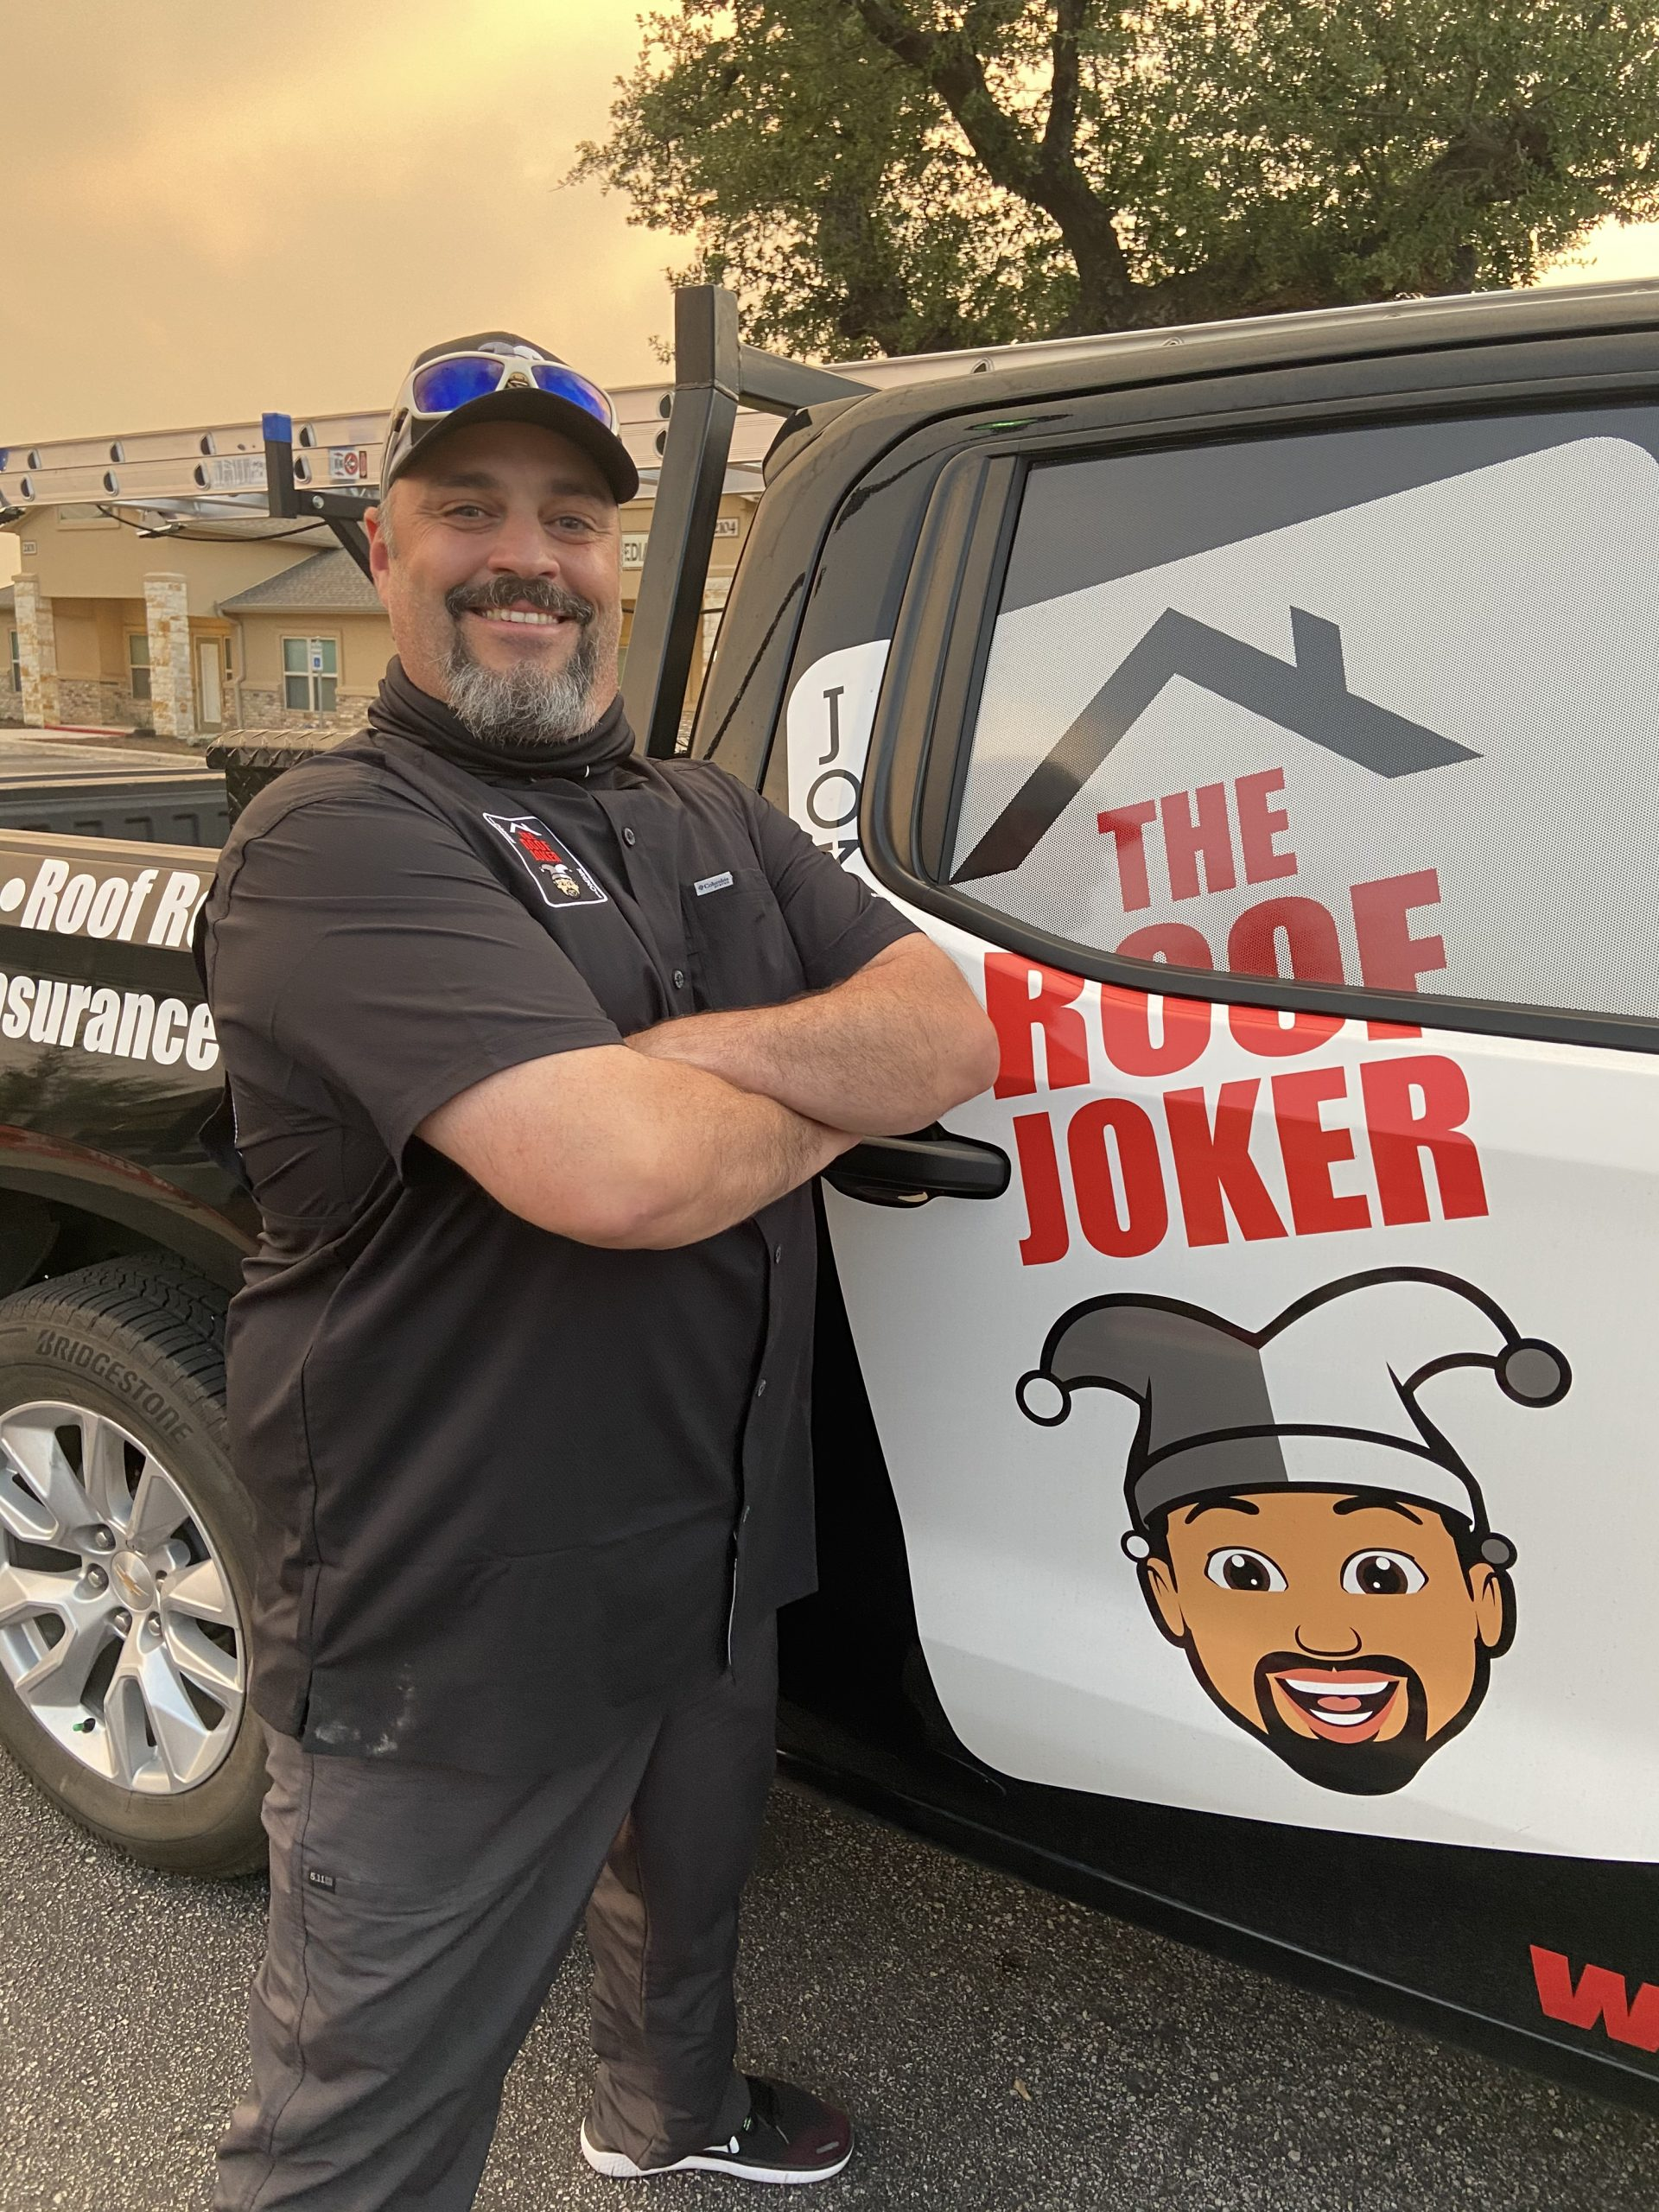 Best Roofing Company Austin - The Roof Joker